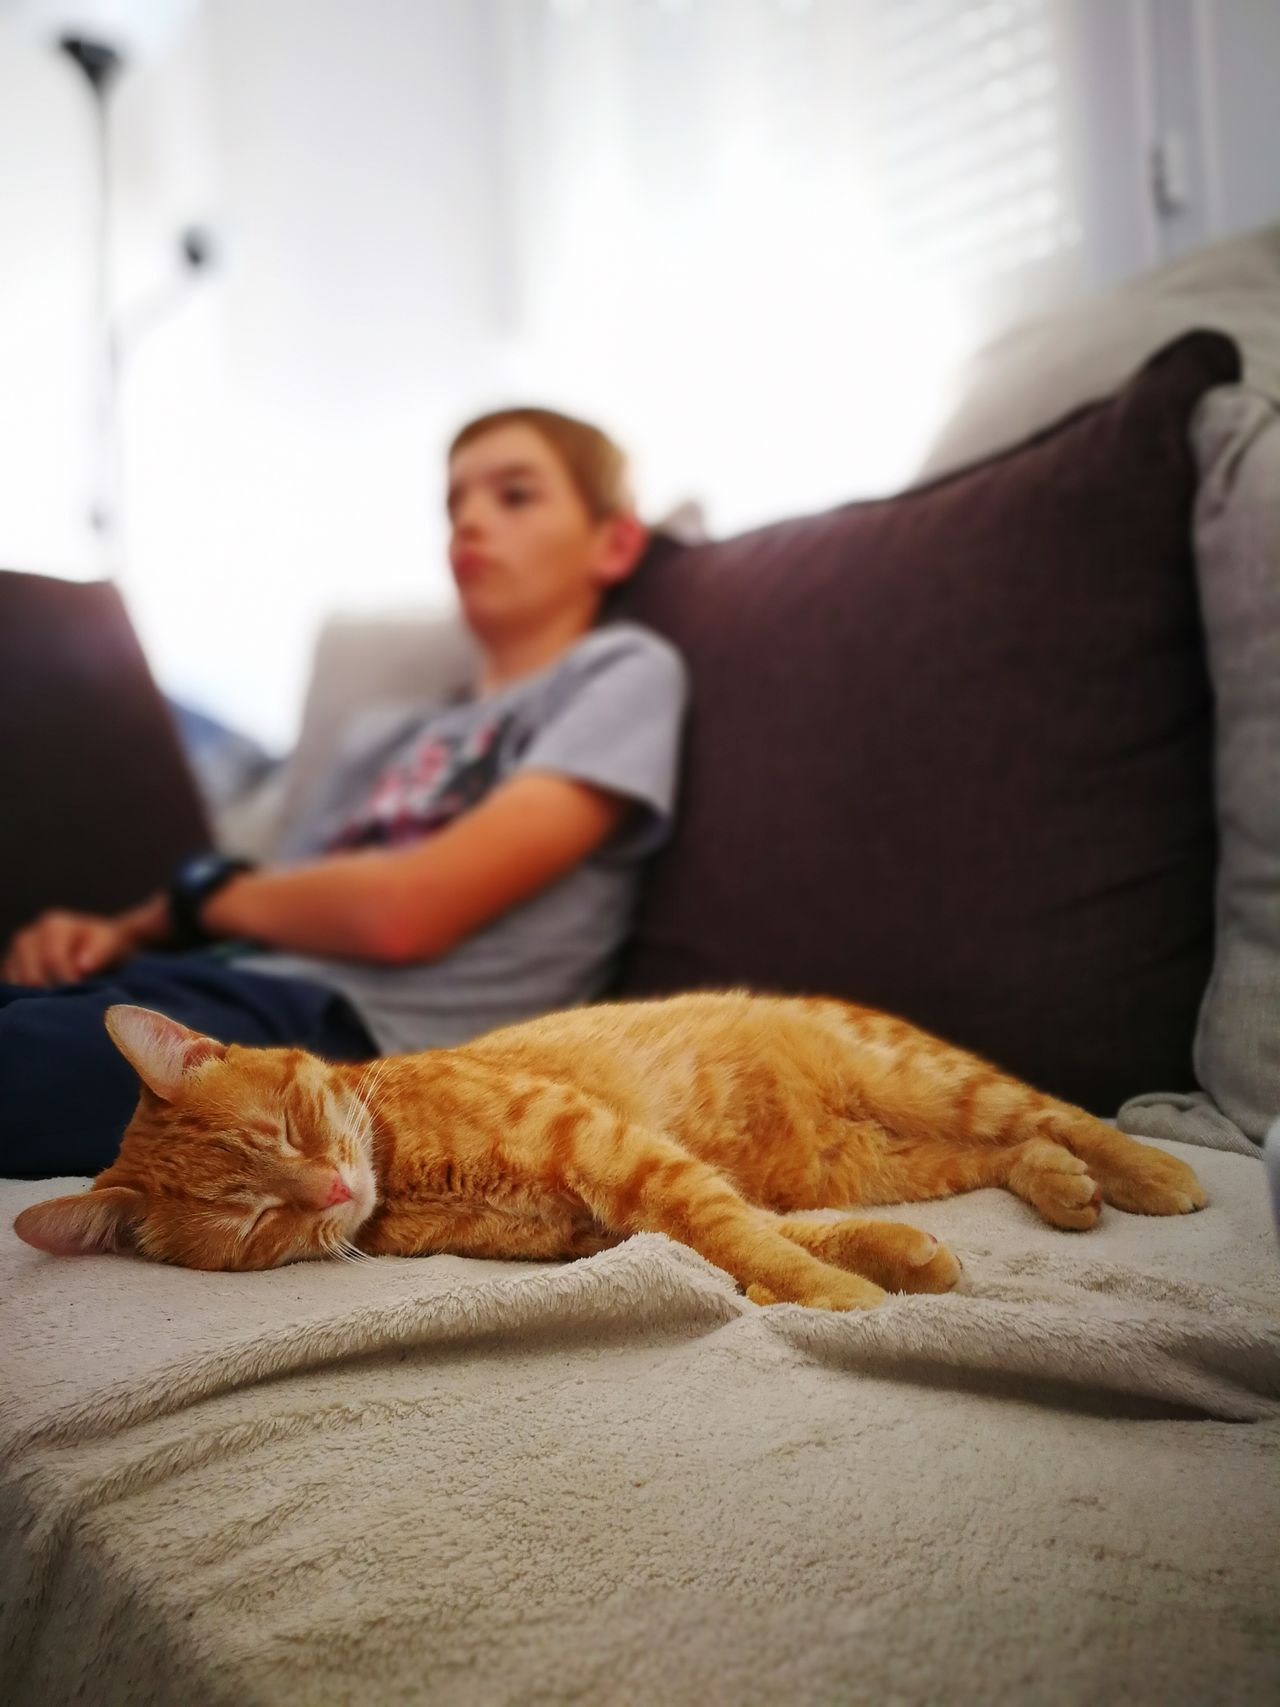 Sleeping cat 😻 One Animal Sofa Home Interior Domestic Animals Cat Sleeping Cat Mammal Pets Animal Themes Domestic Cat Relaxation Living Room